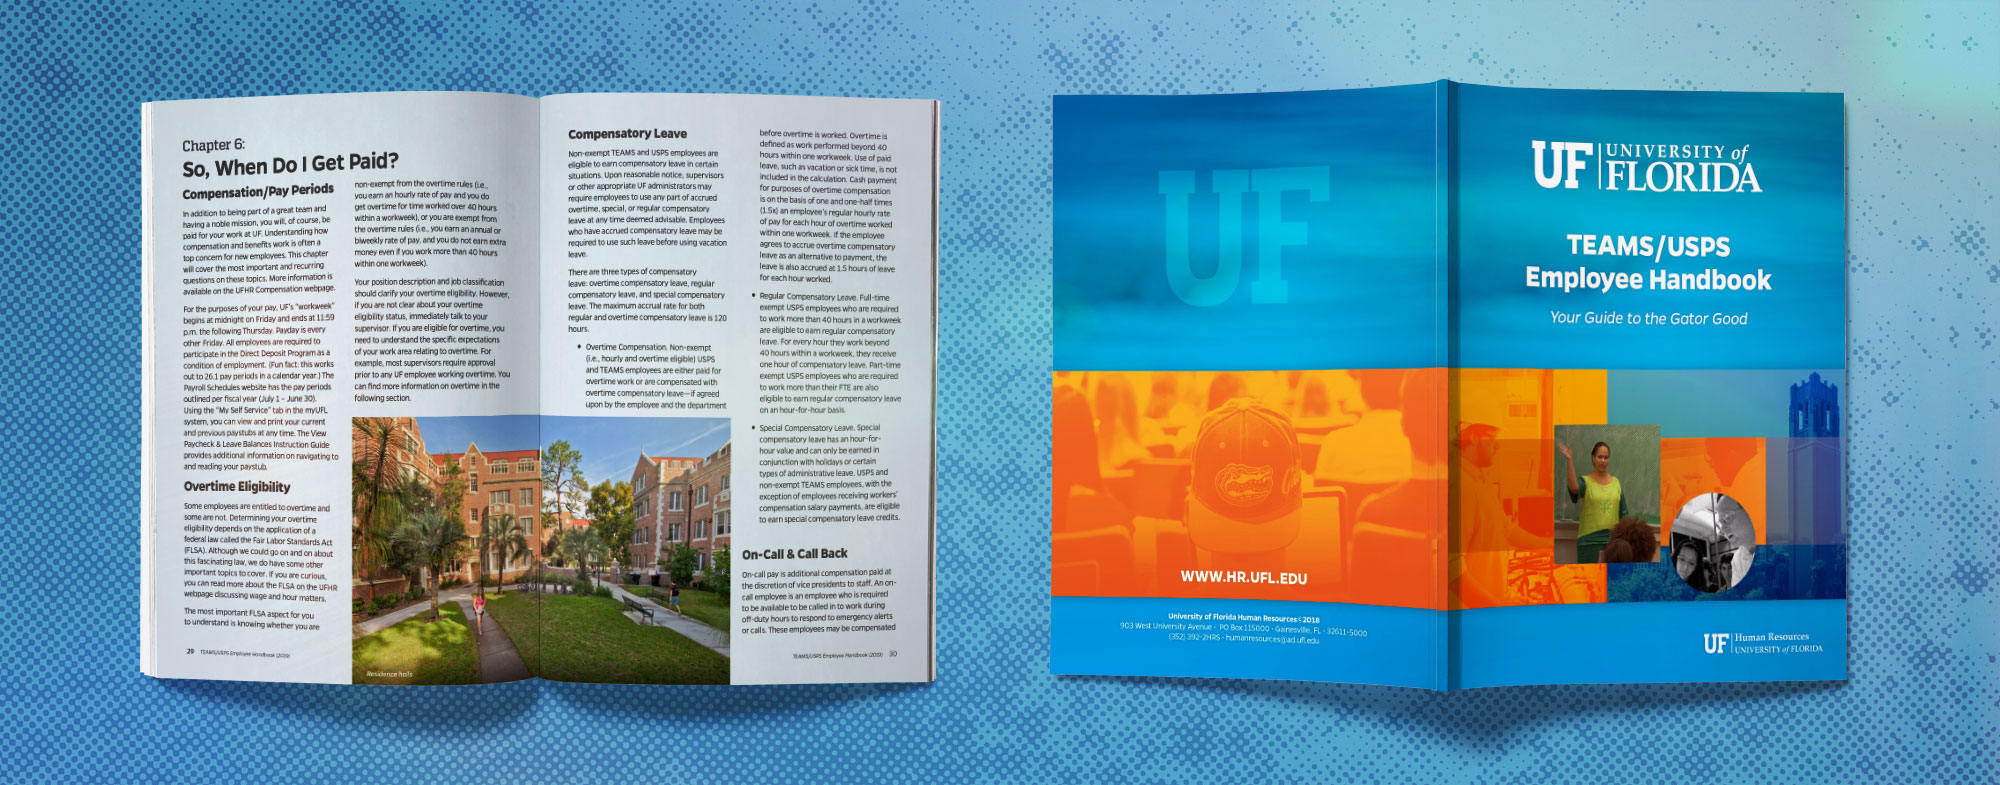 Image of the cover and internal pages of the employee handbook